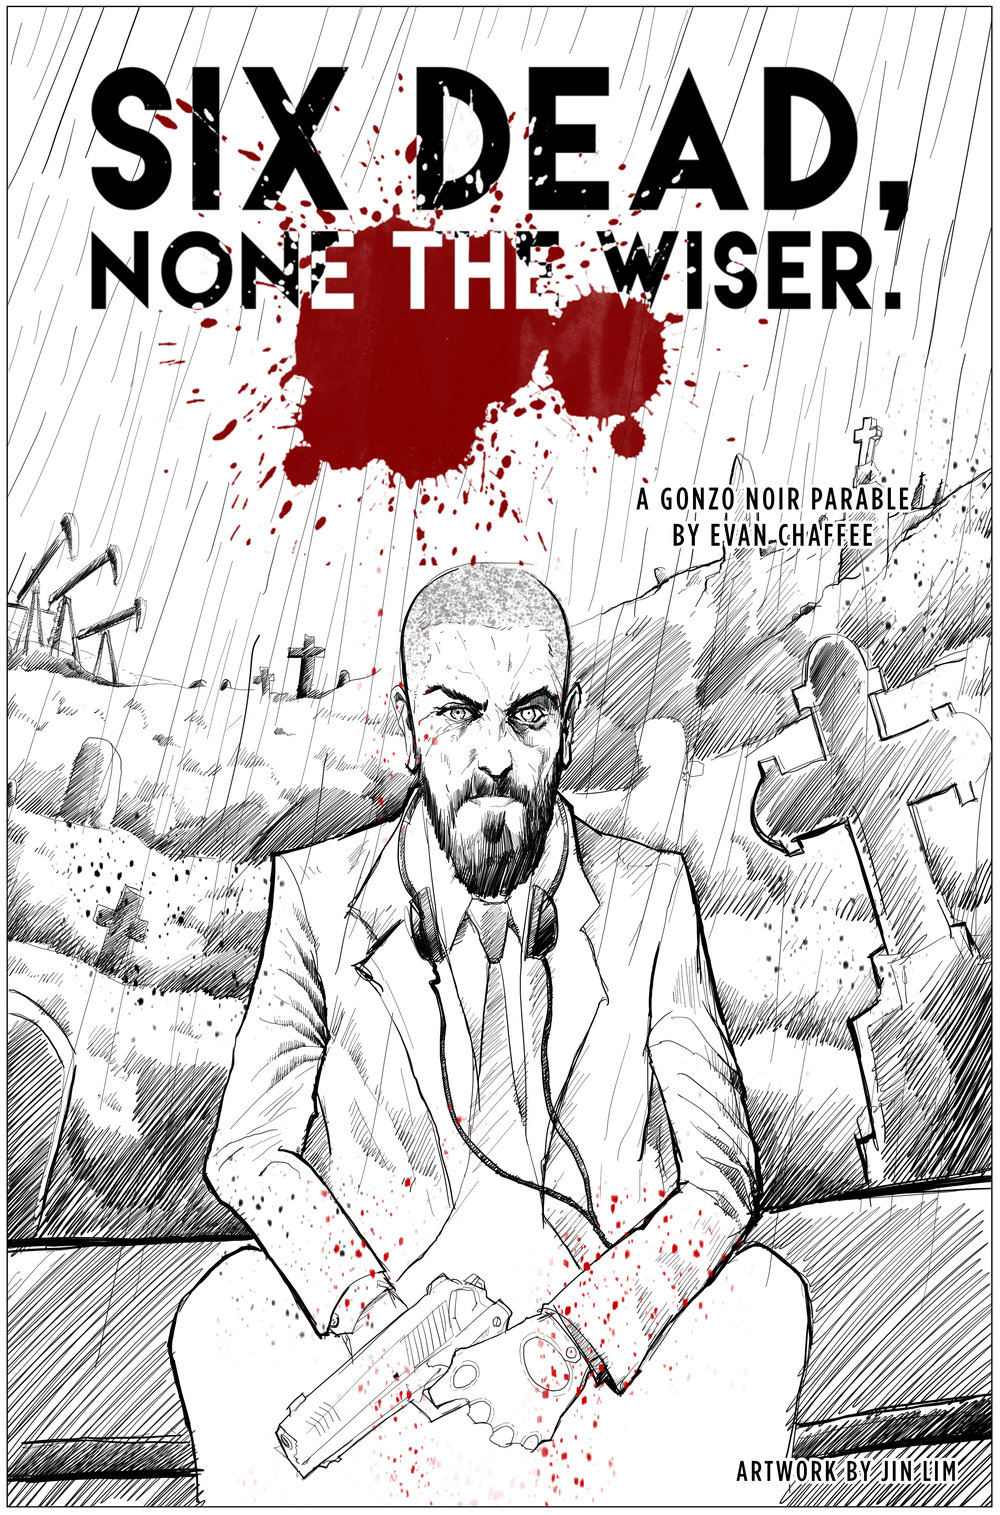 Coming Soon:Six Dead, None The Wiser Graphic Novel - A Gonzo Noir Parable by Evan ChaffeeArt by Jin Lim